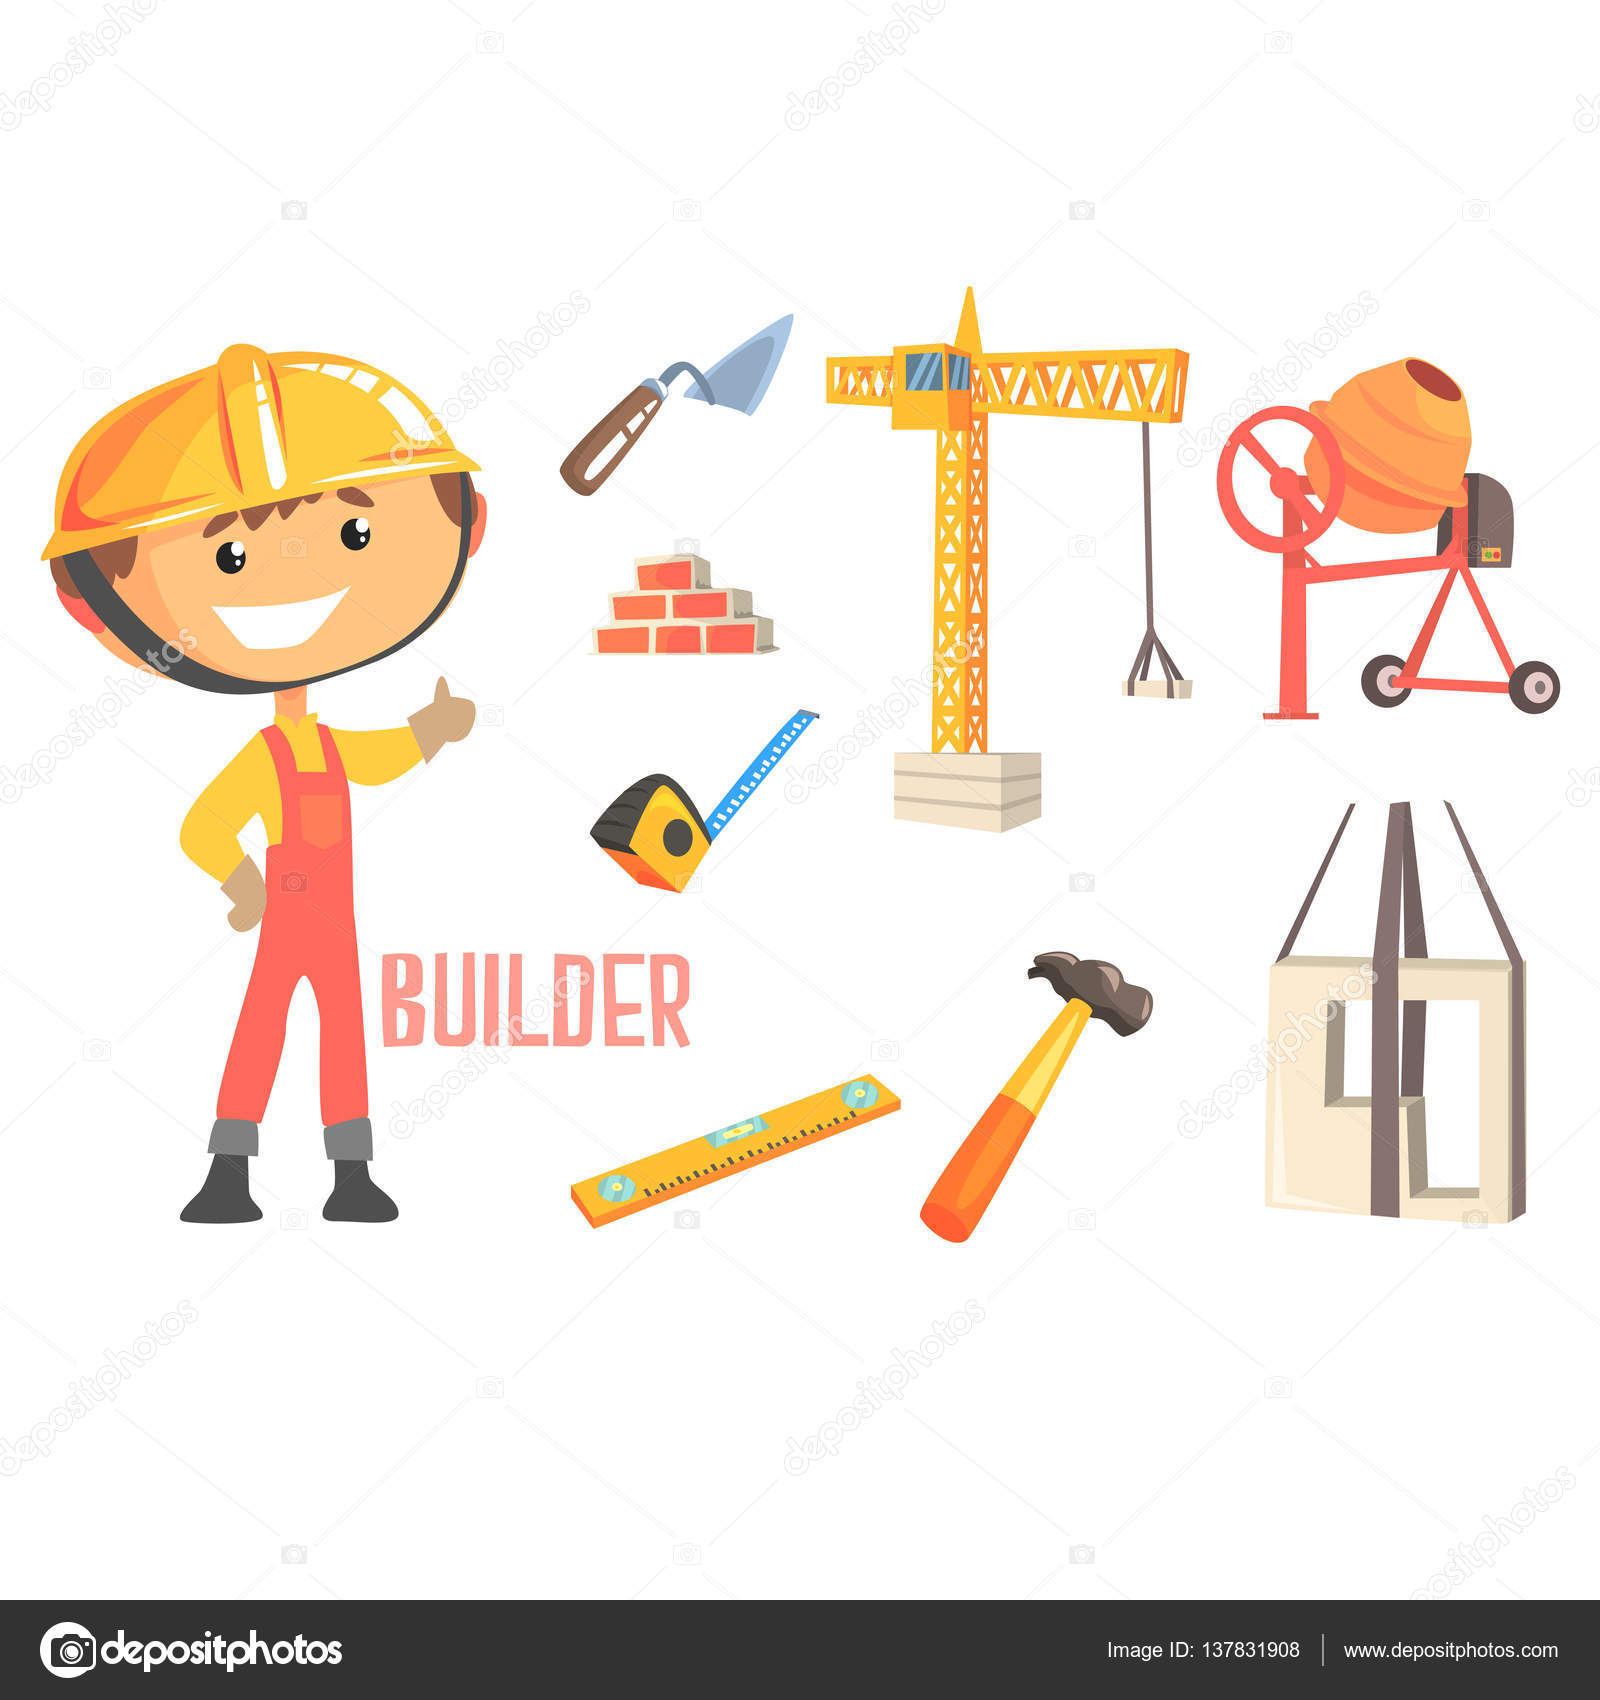 boy builder kids future dream construction worker professional illustration related to profession objects smiling child carton character job career attributes around cute vector vector by topvectors